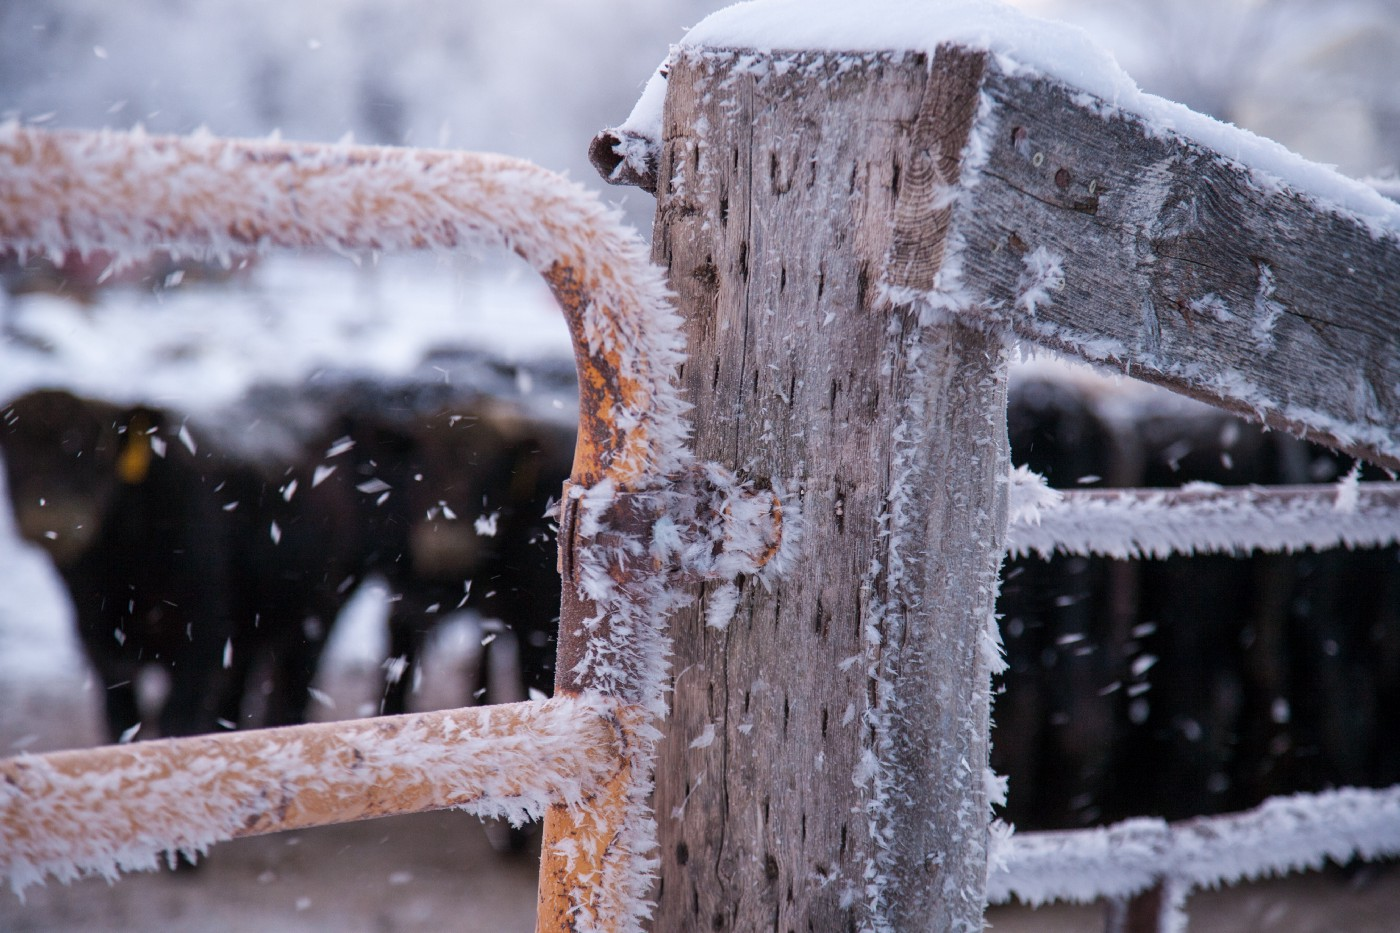 Cattle behind a frozen fence